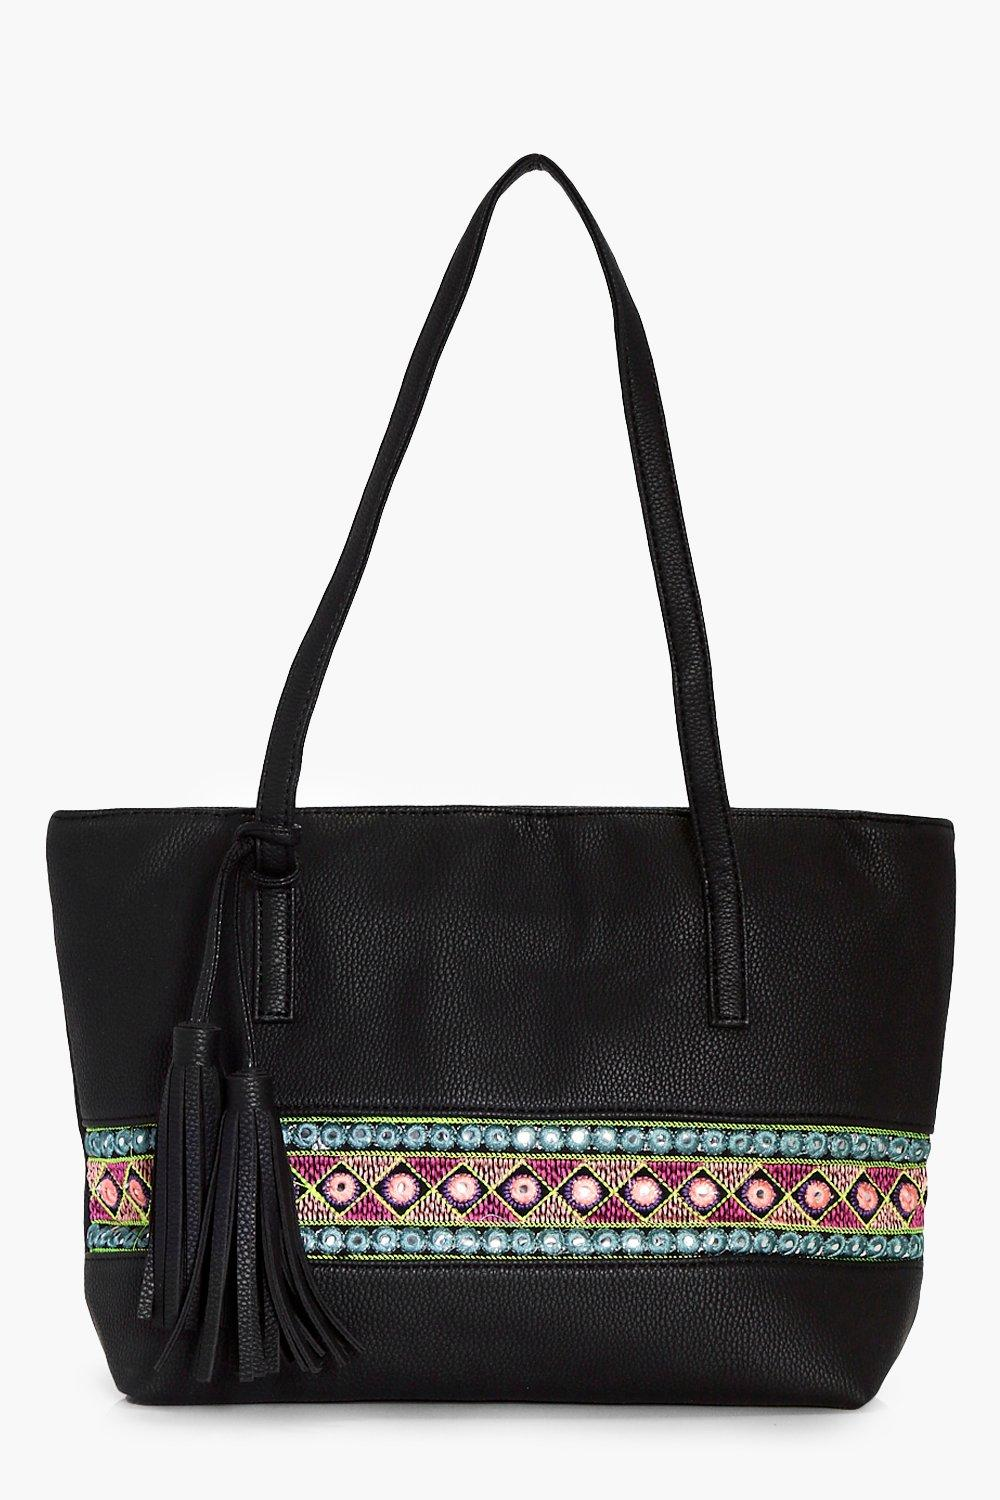 Aztec Mirror Trim Shopper Bag - black - Lucia Azte